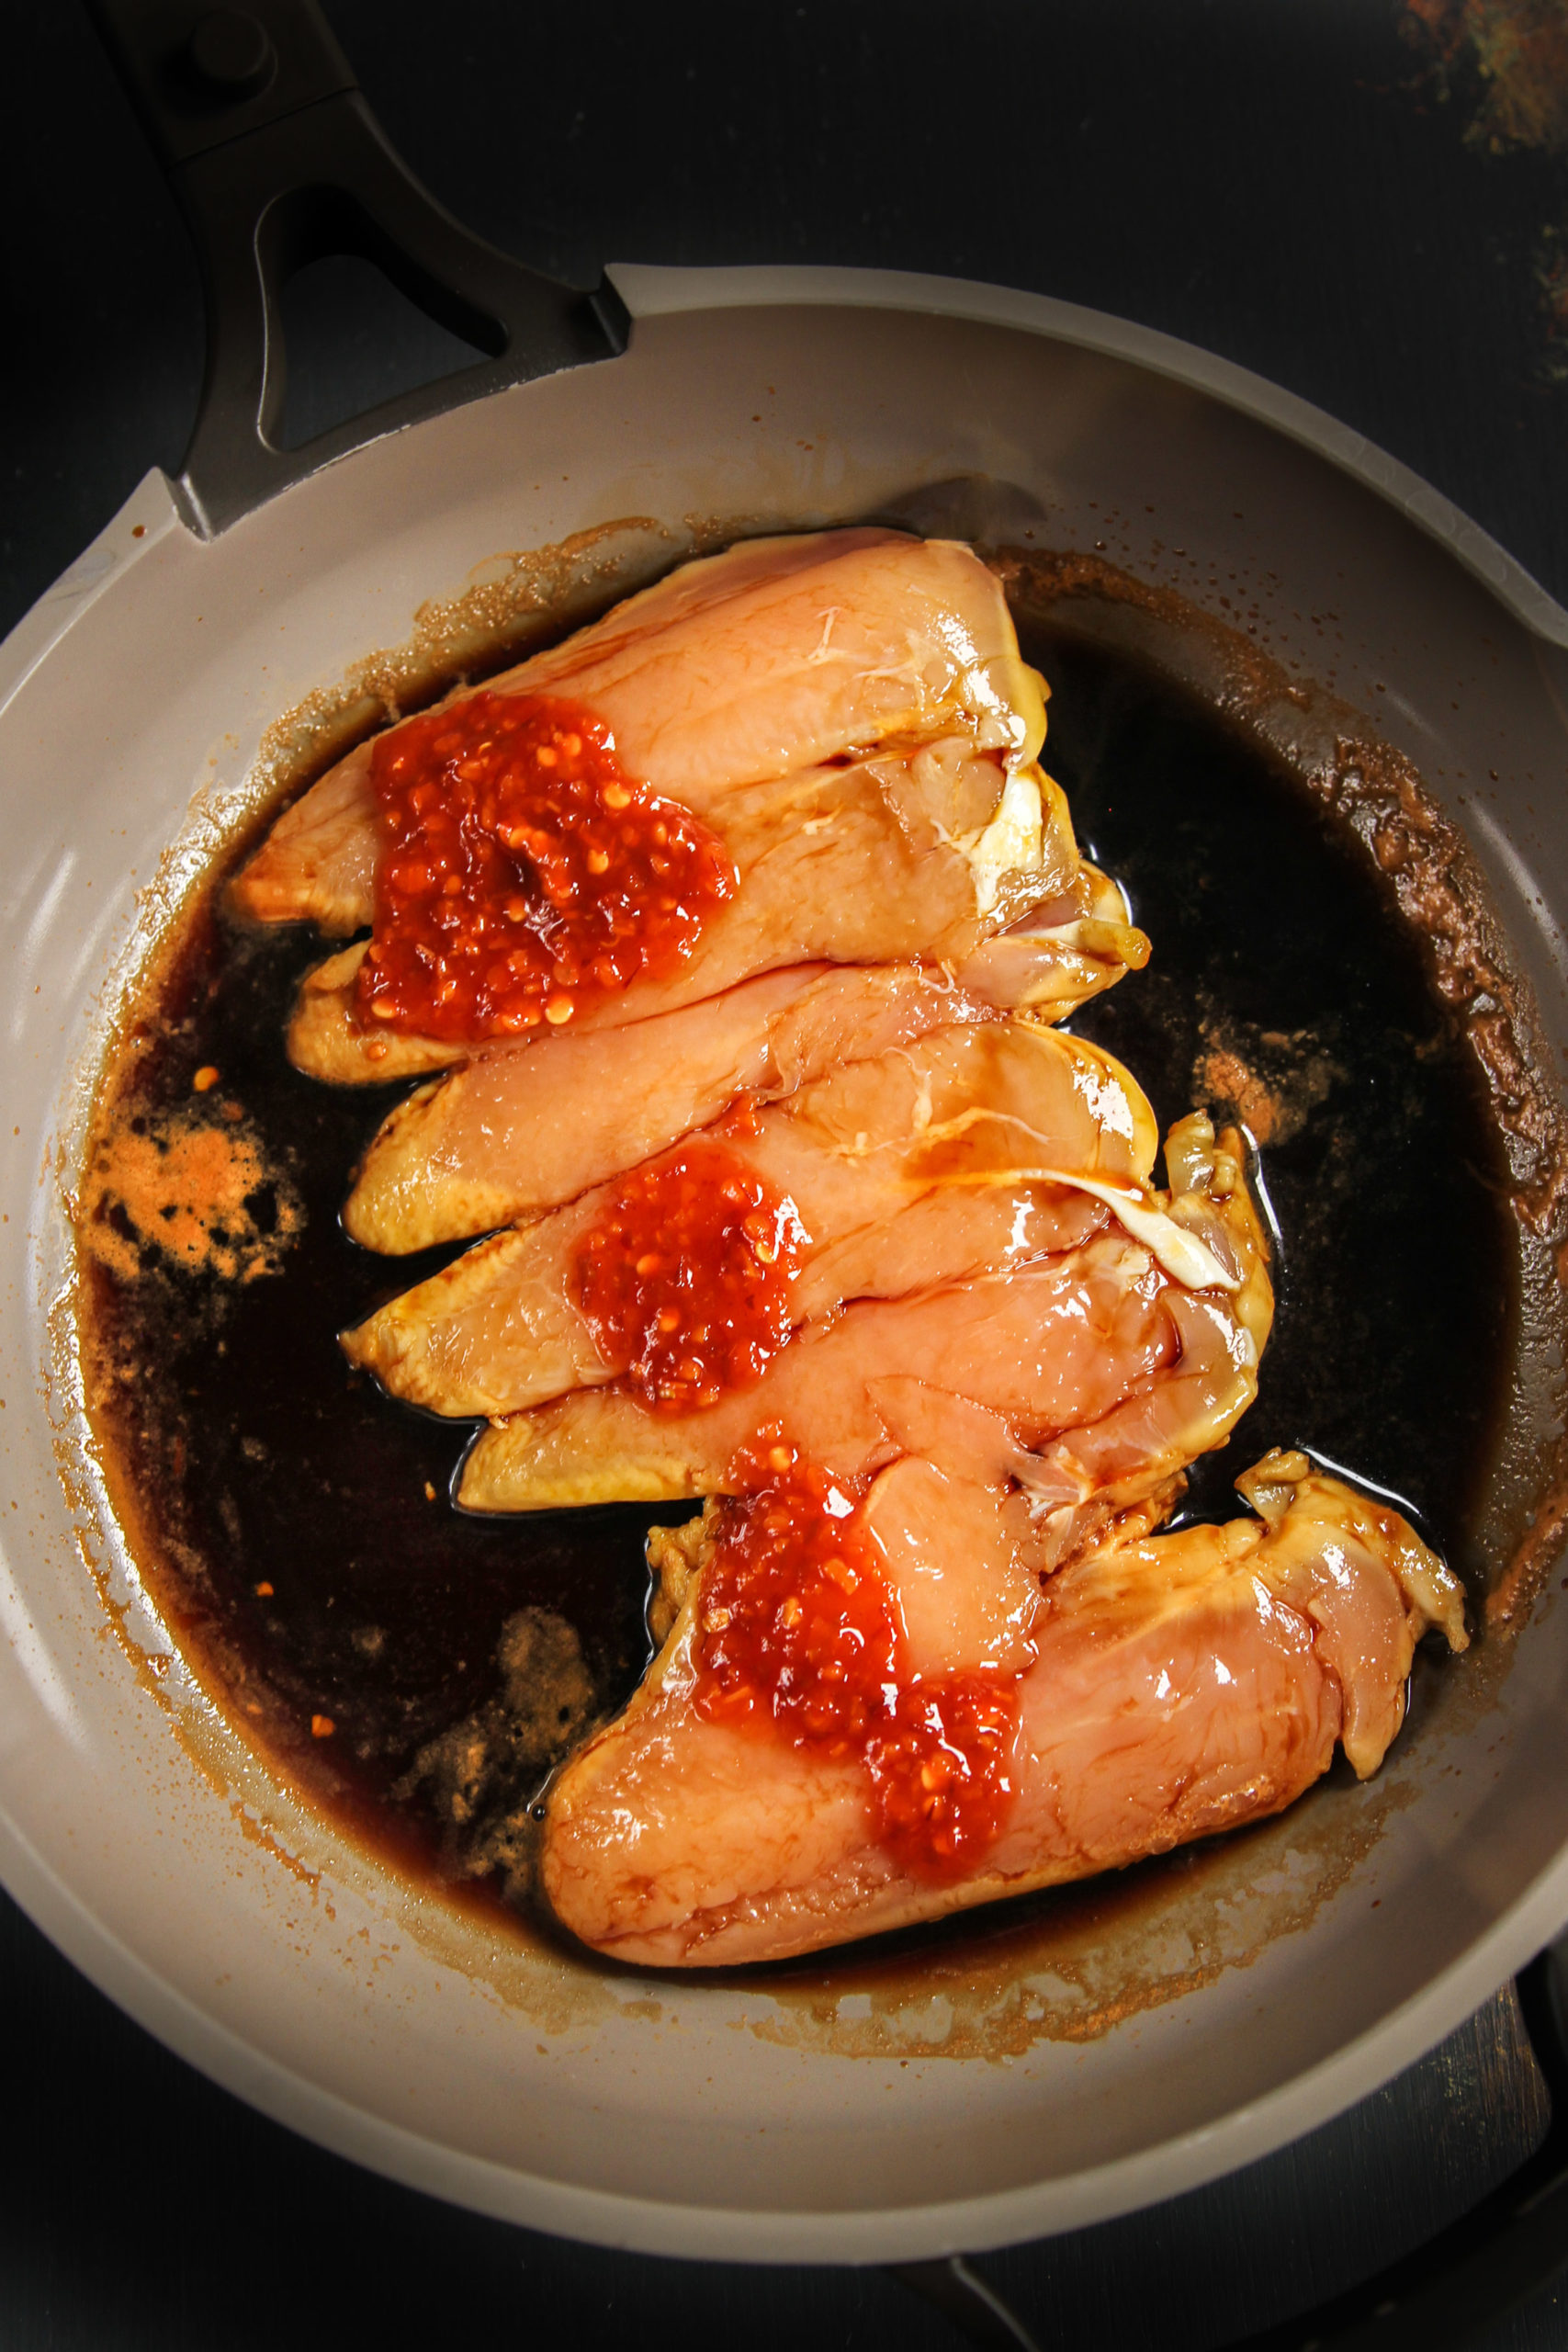 Chicken tenderloin in a pan with chili paste and soy sauce